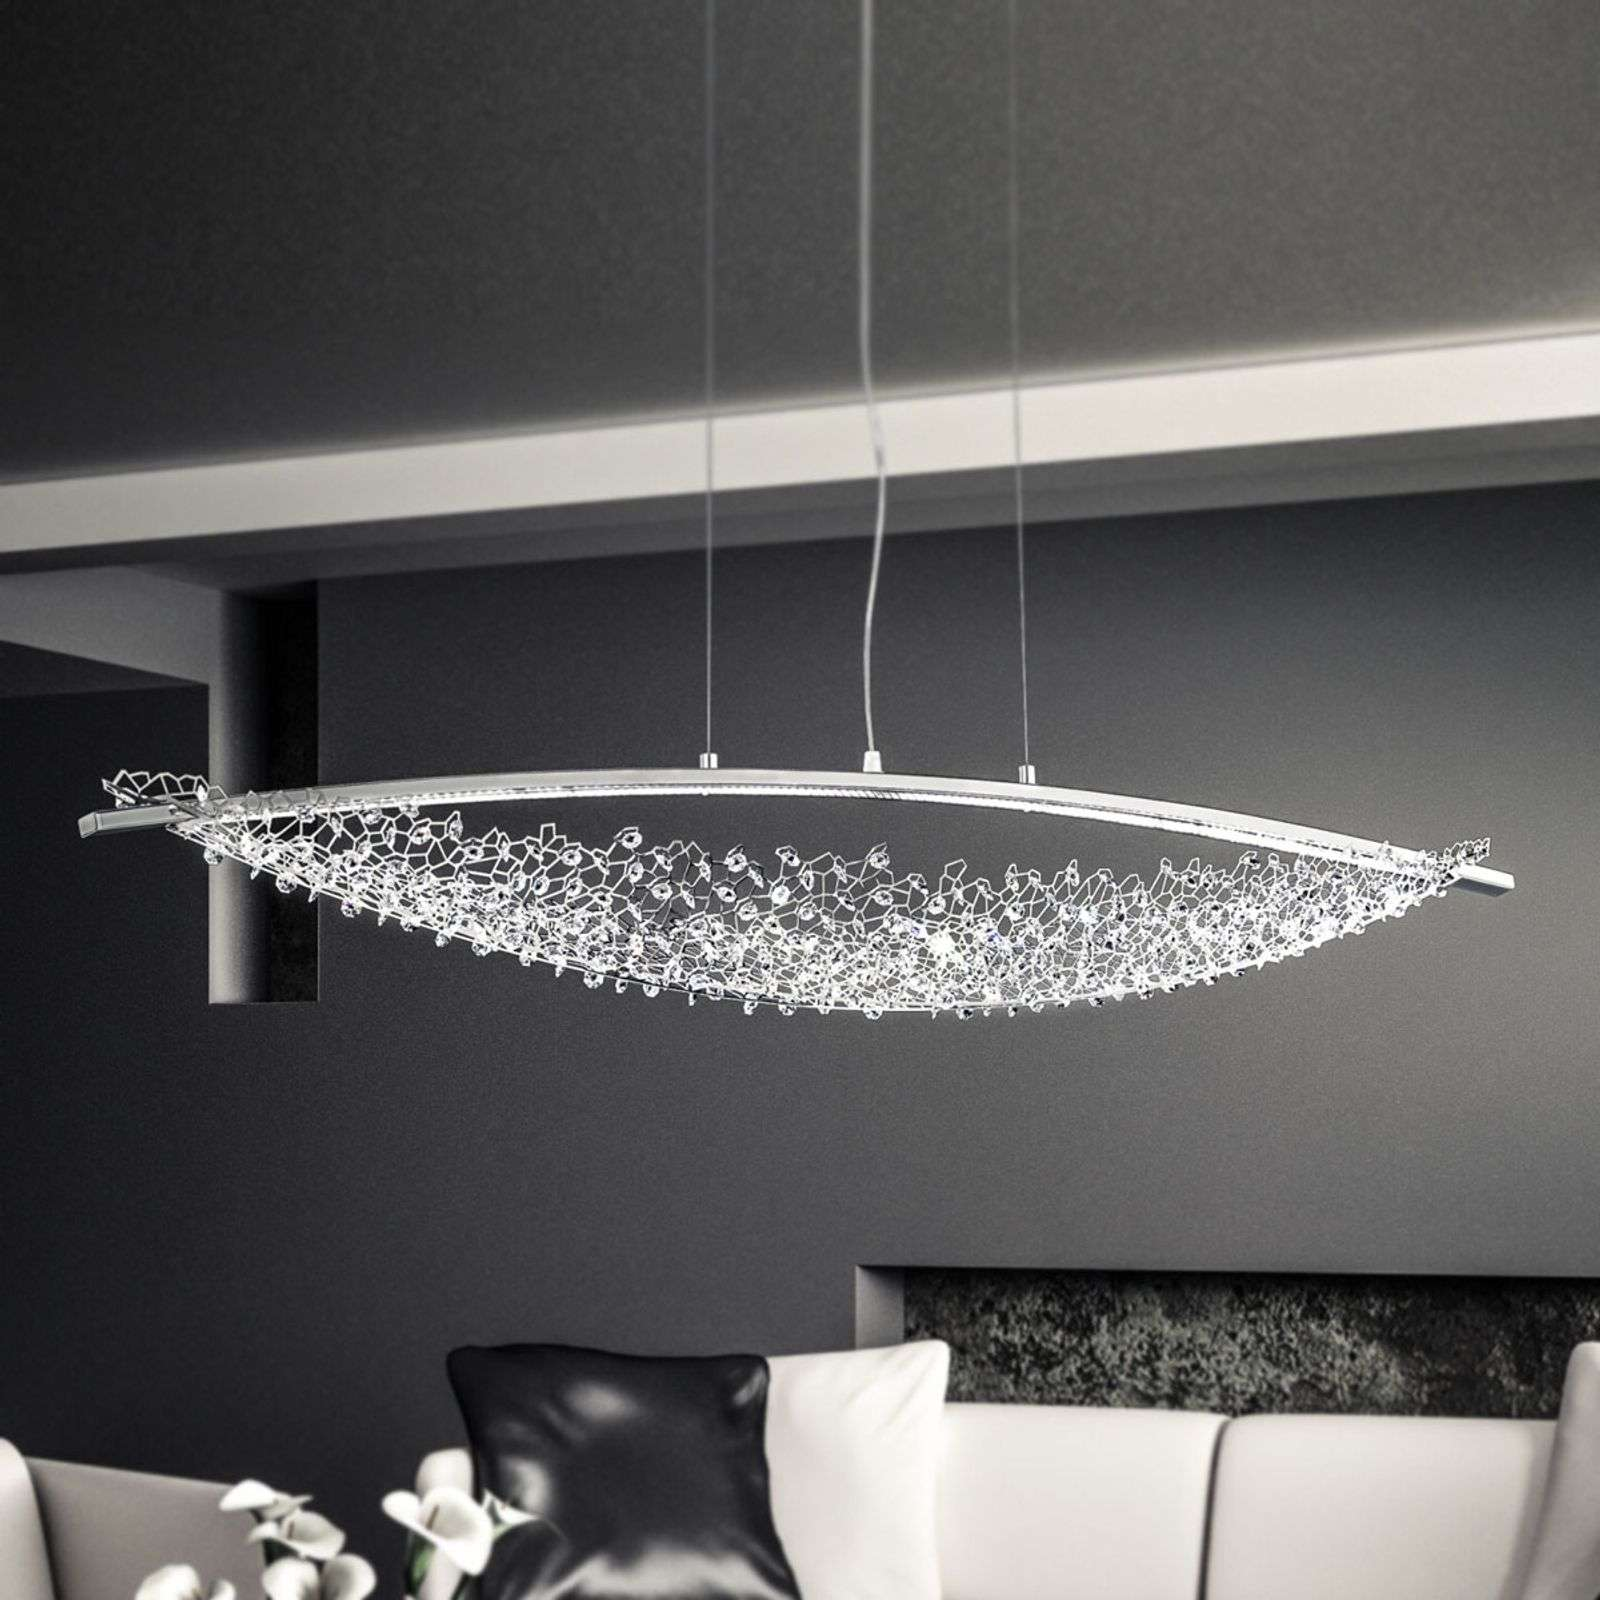 132 cm - suspension LED Amaca avec Swarovski